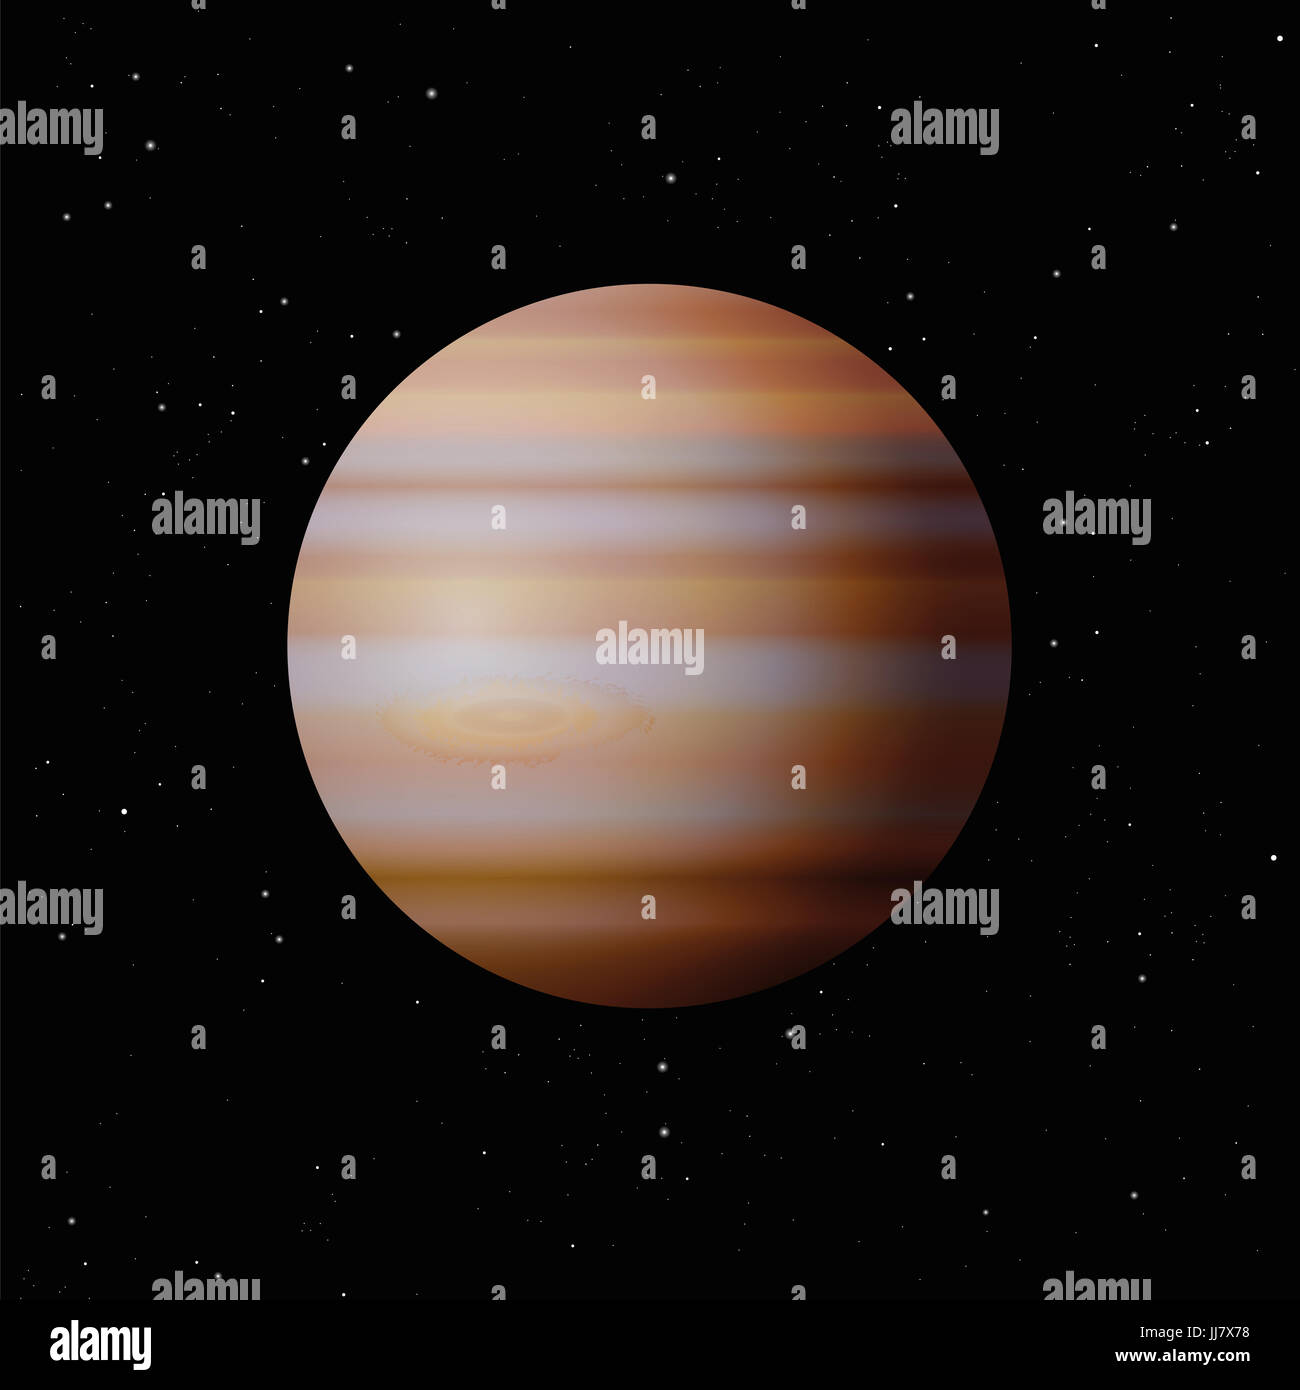 Planet Jupiter with typical great spot - largest planet in the Solar System - illustration on starry night galaxy - Stock Image